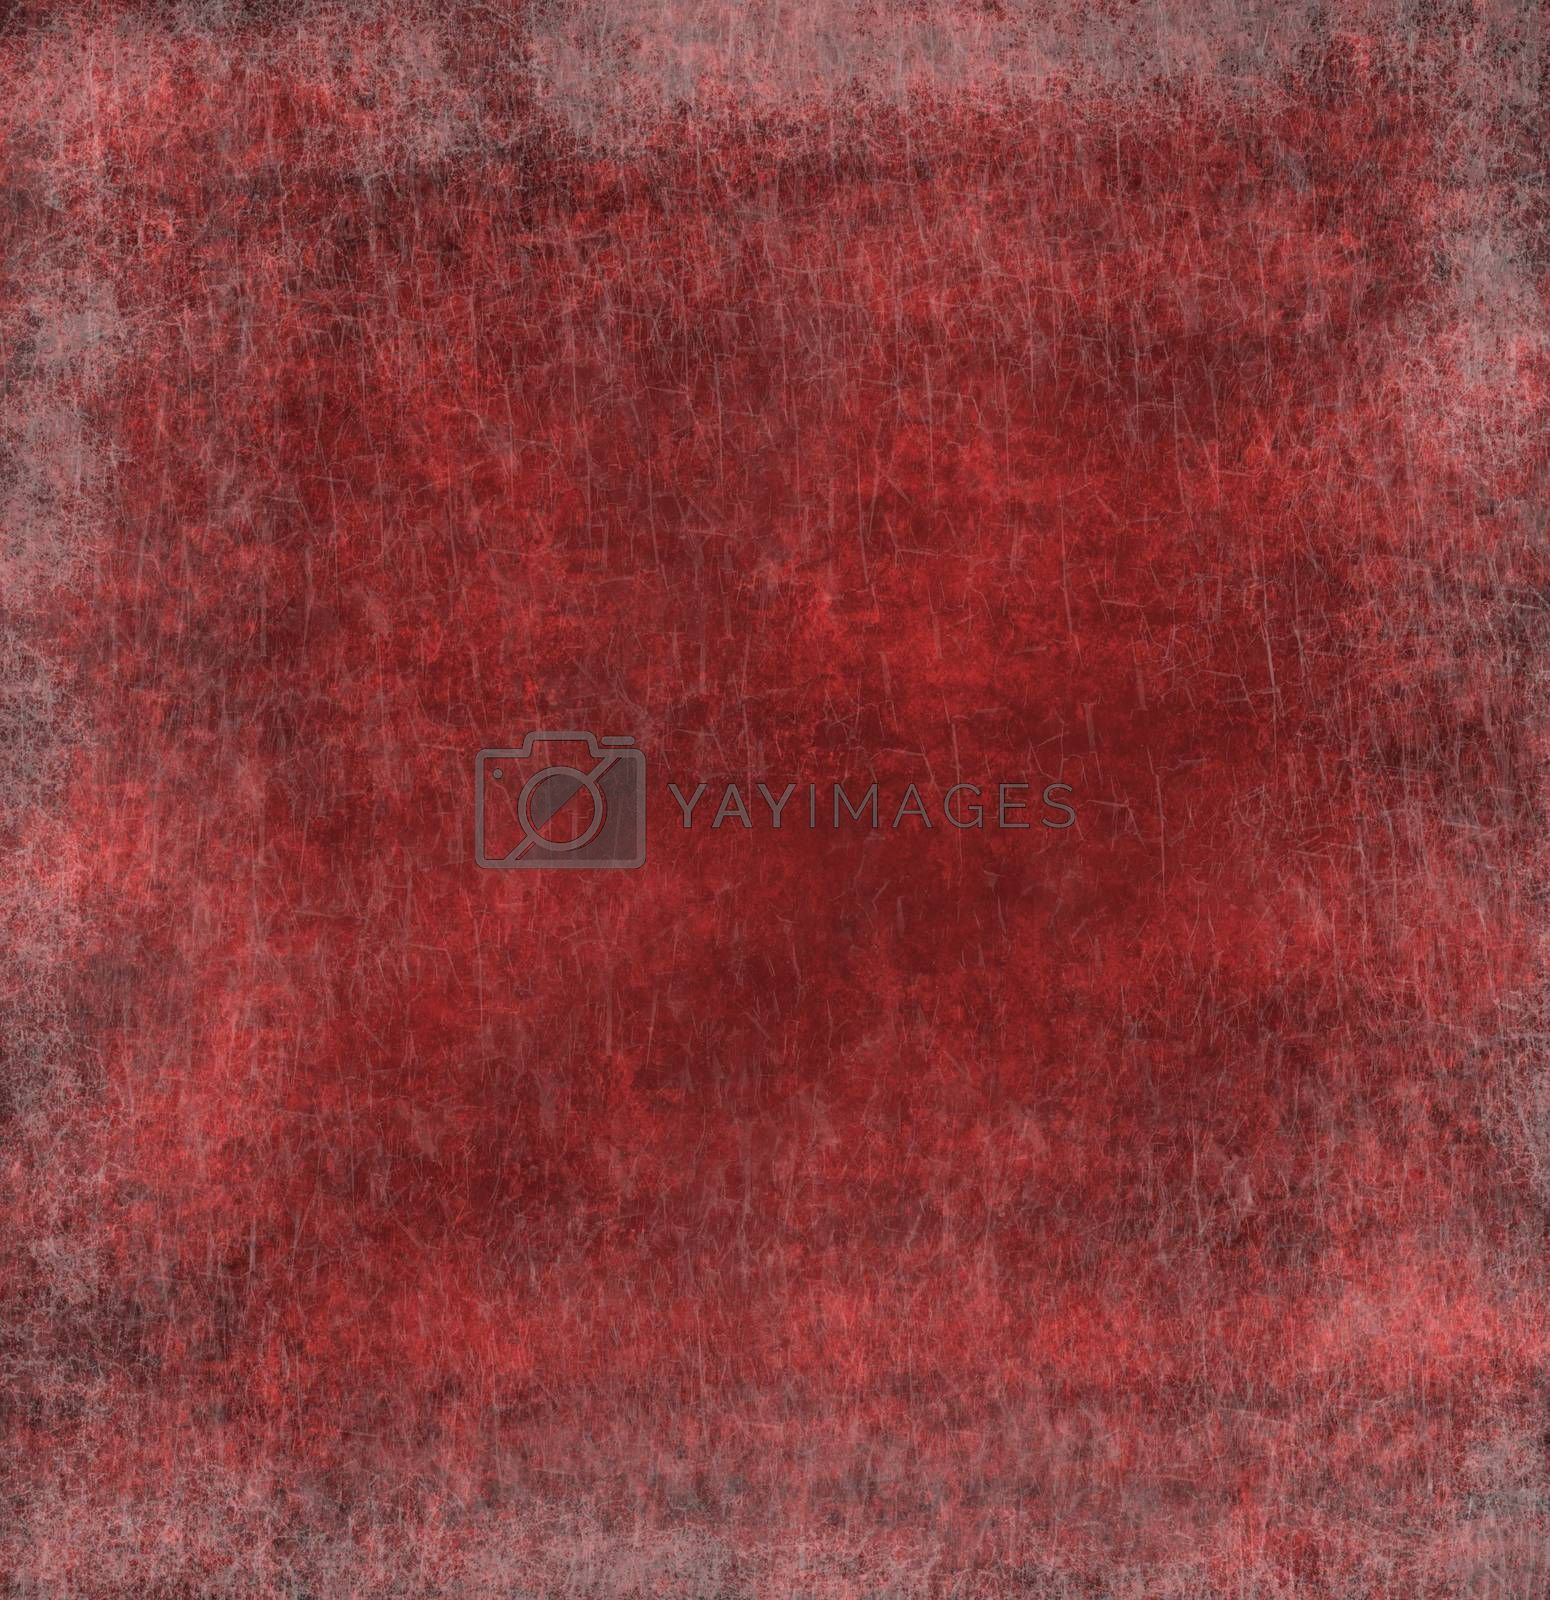 abstract  background light color vintage grunge background texture